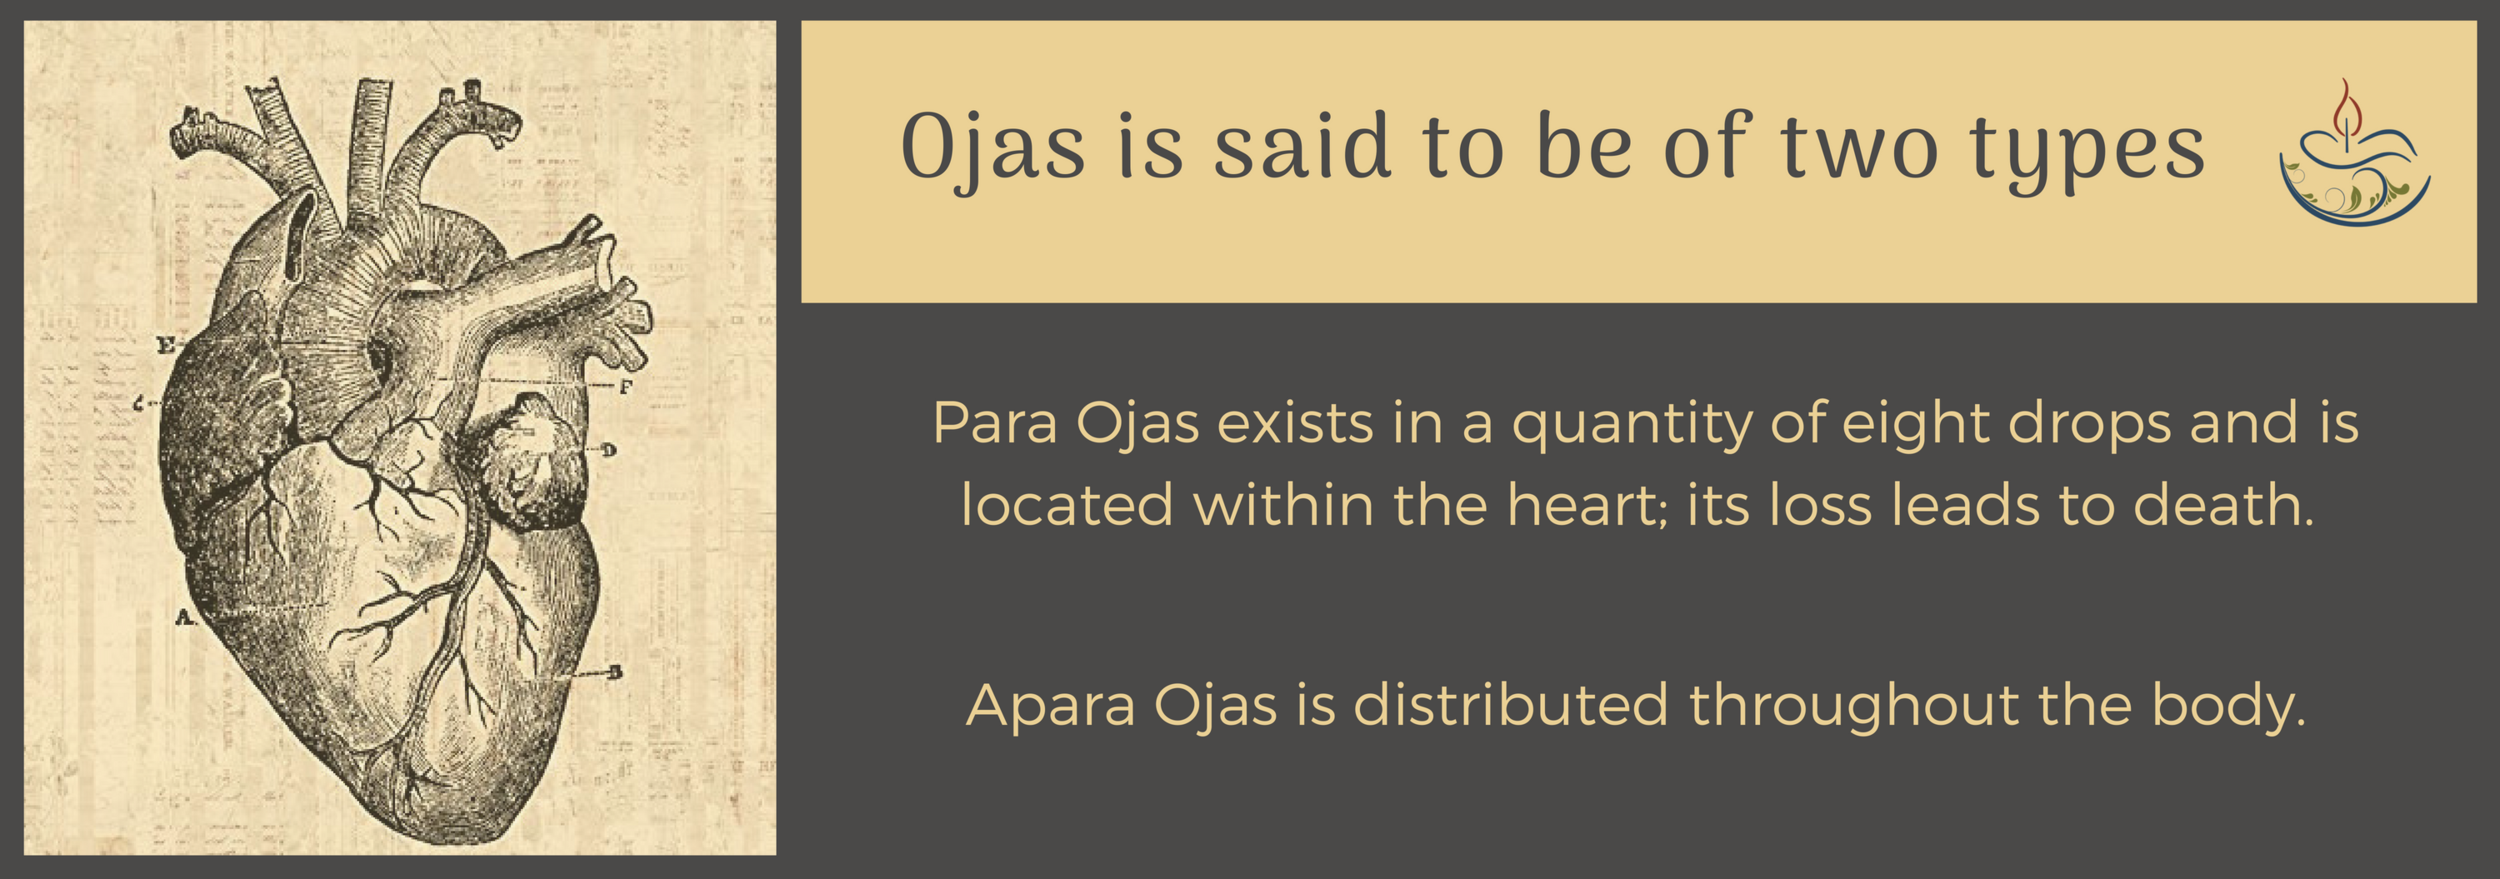 types of ojas - gerson Ayurveda (1).png